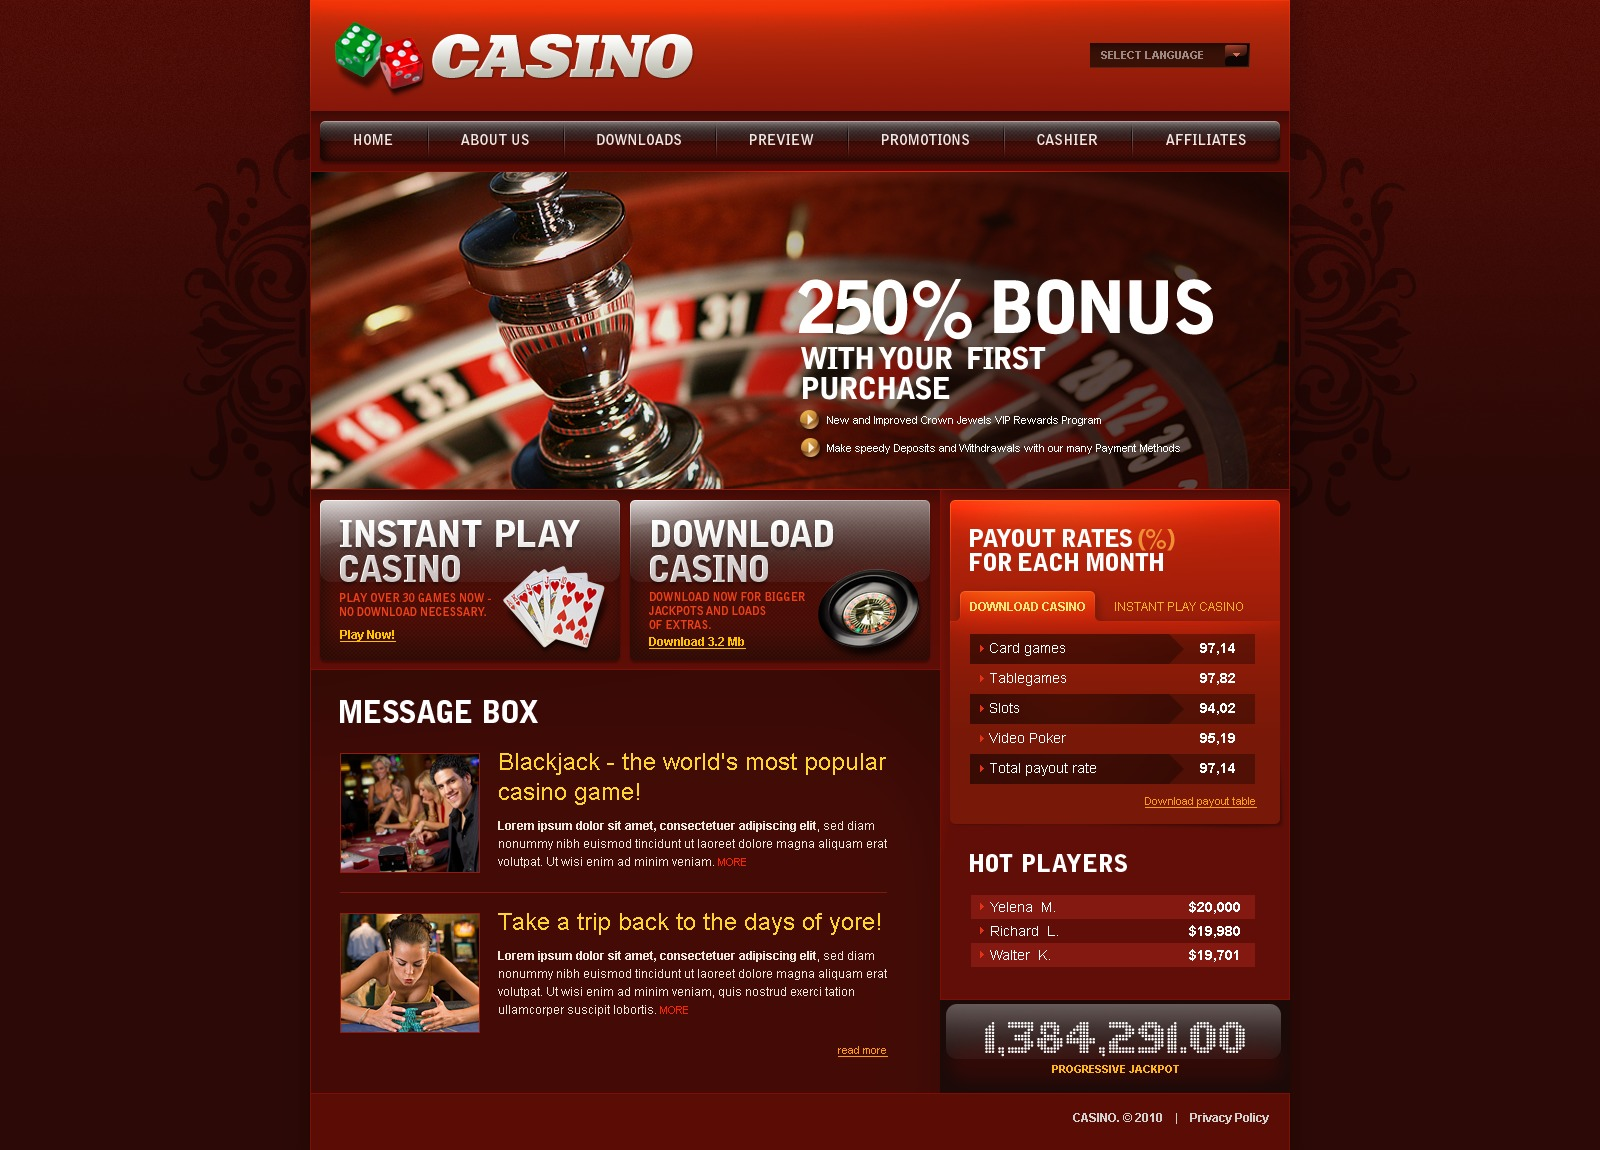 Casinos websites calif indian casino slot regulations